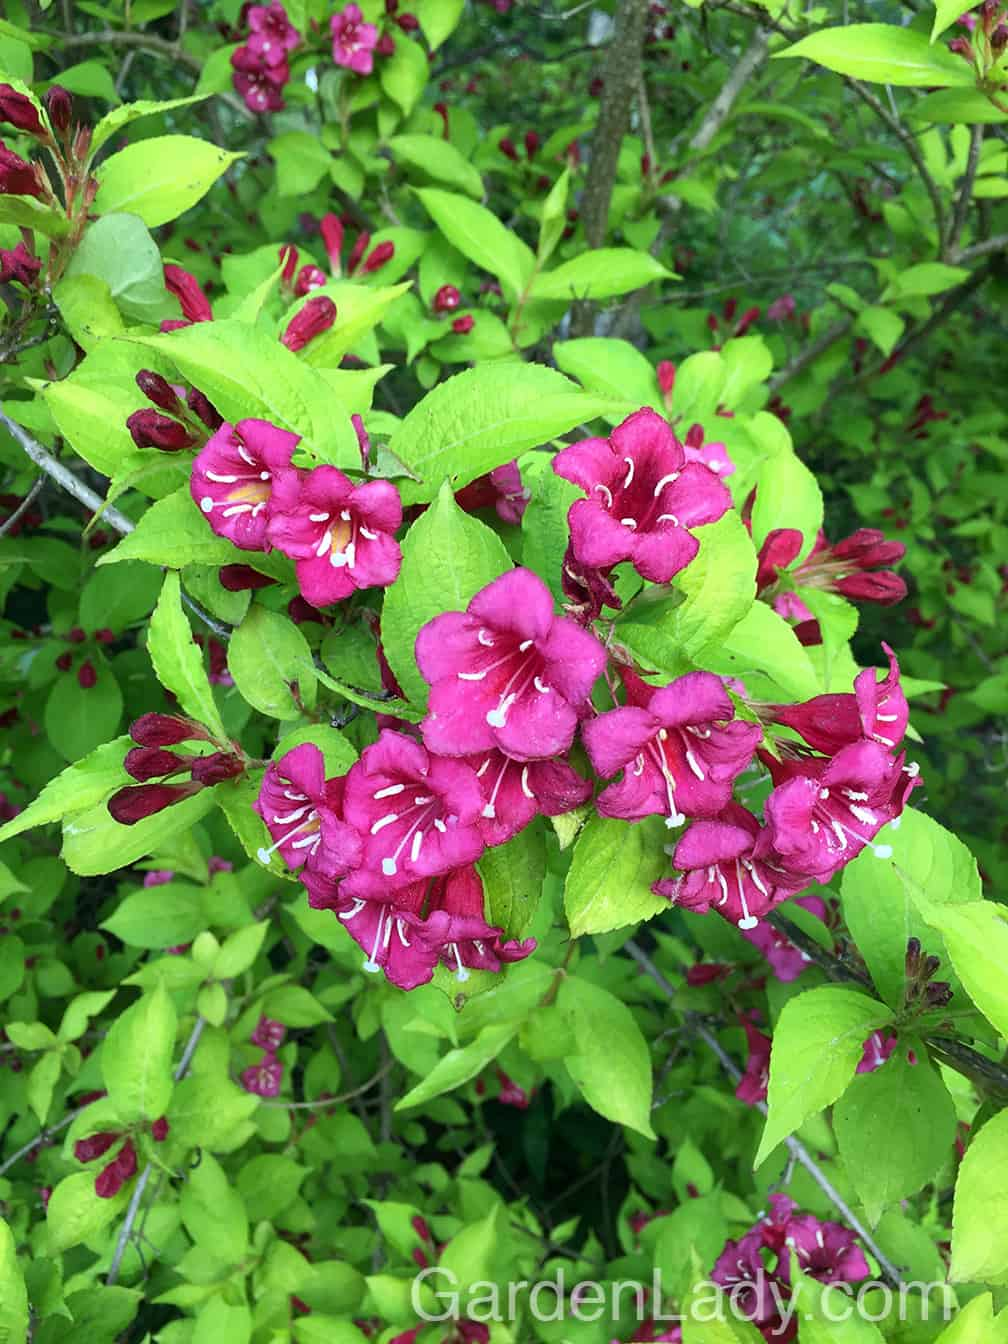 """Weigela shrubs are in their glory in early June, and there are many wonderful varieties. This one is 'Rubidor' and it has lime colored foliage with bright pink flowers. It's a large, sprawling """"POW!"""" plant and I can't understand why it's not more widely available in garden centers. A must-have plant in a flowering shrub border or mixed-shrub privacy planting."""